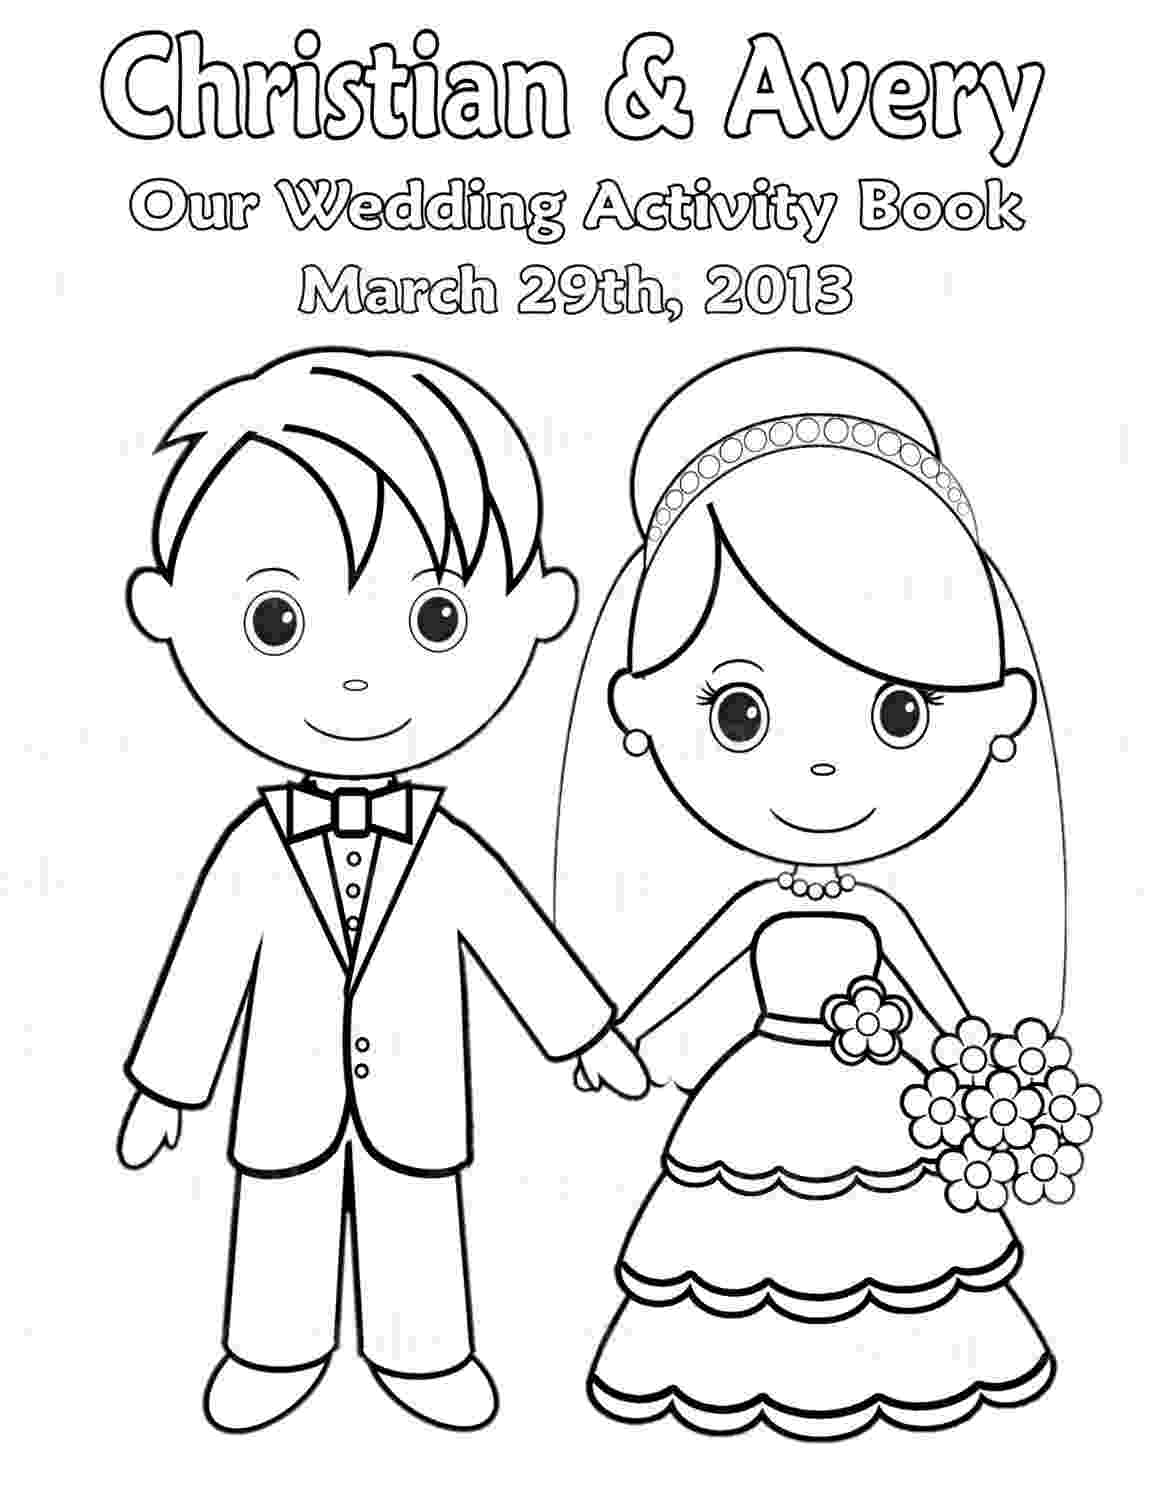 wedding coloring book printable personalized wedding coloring activity by wedding book coloring